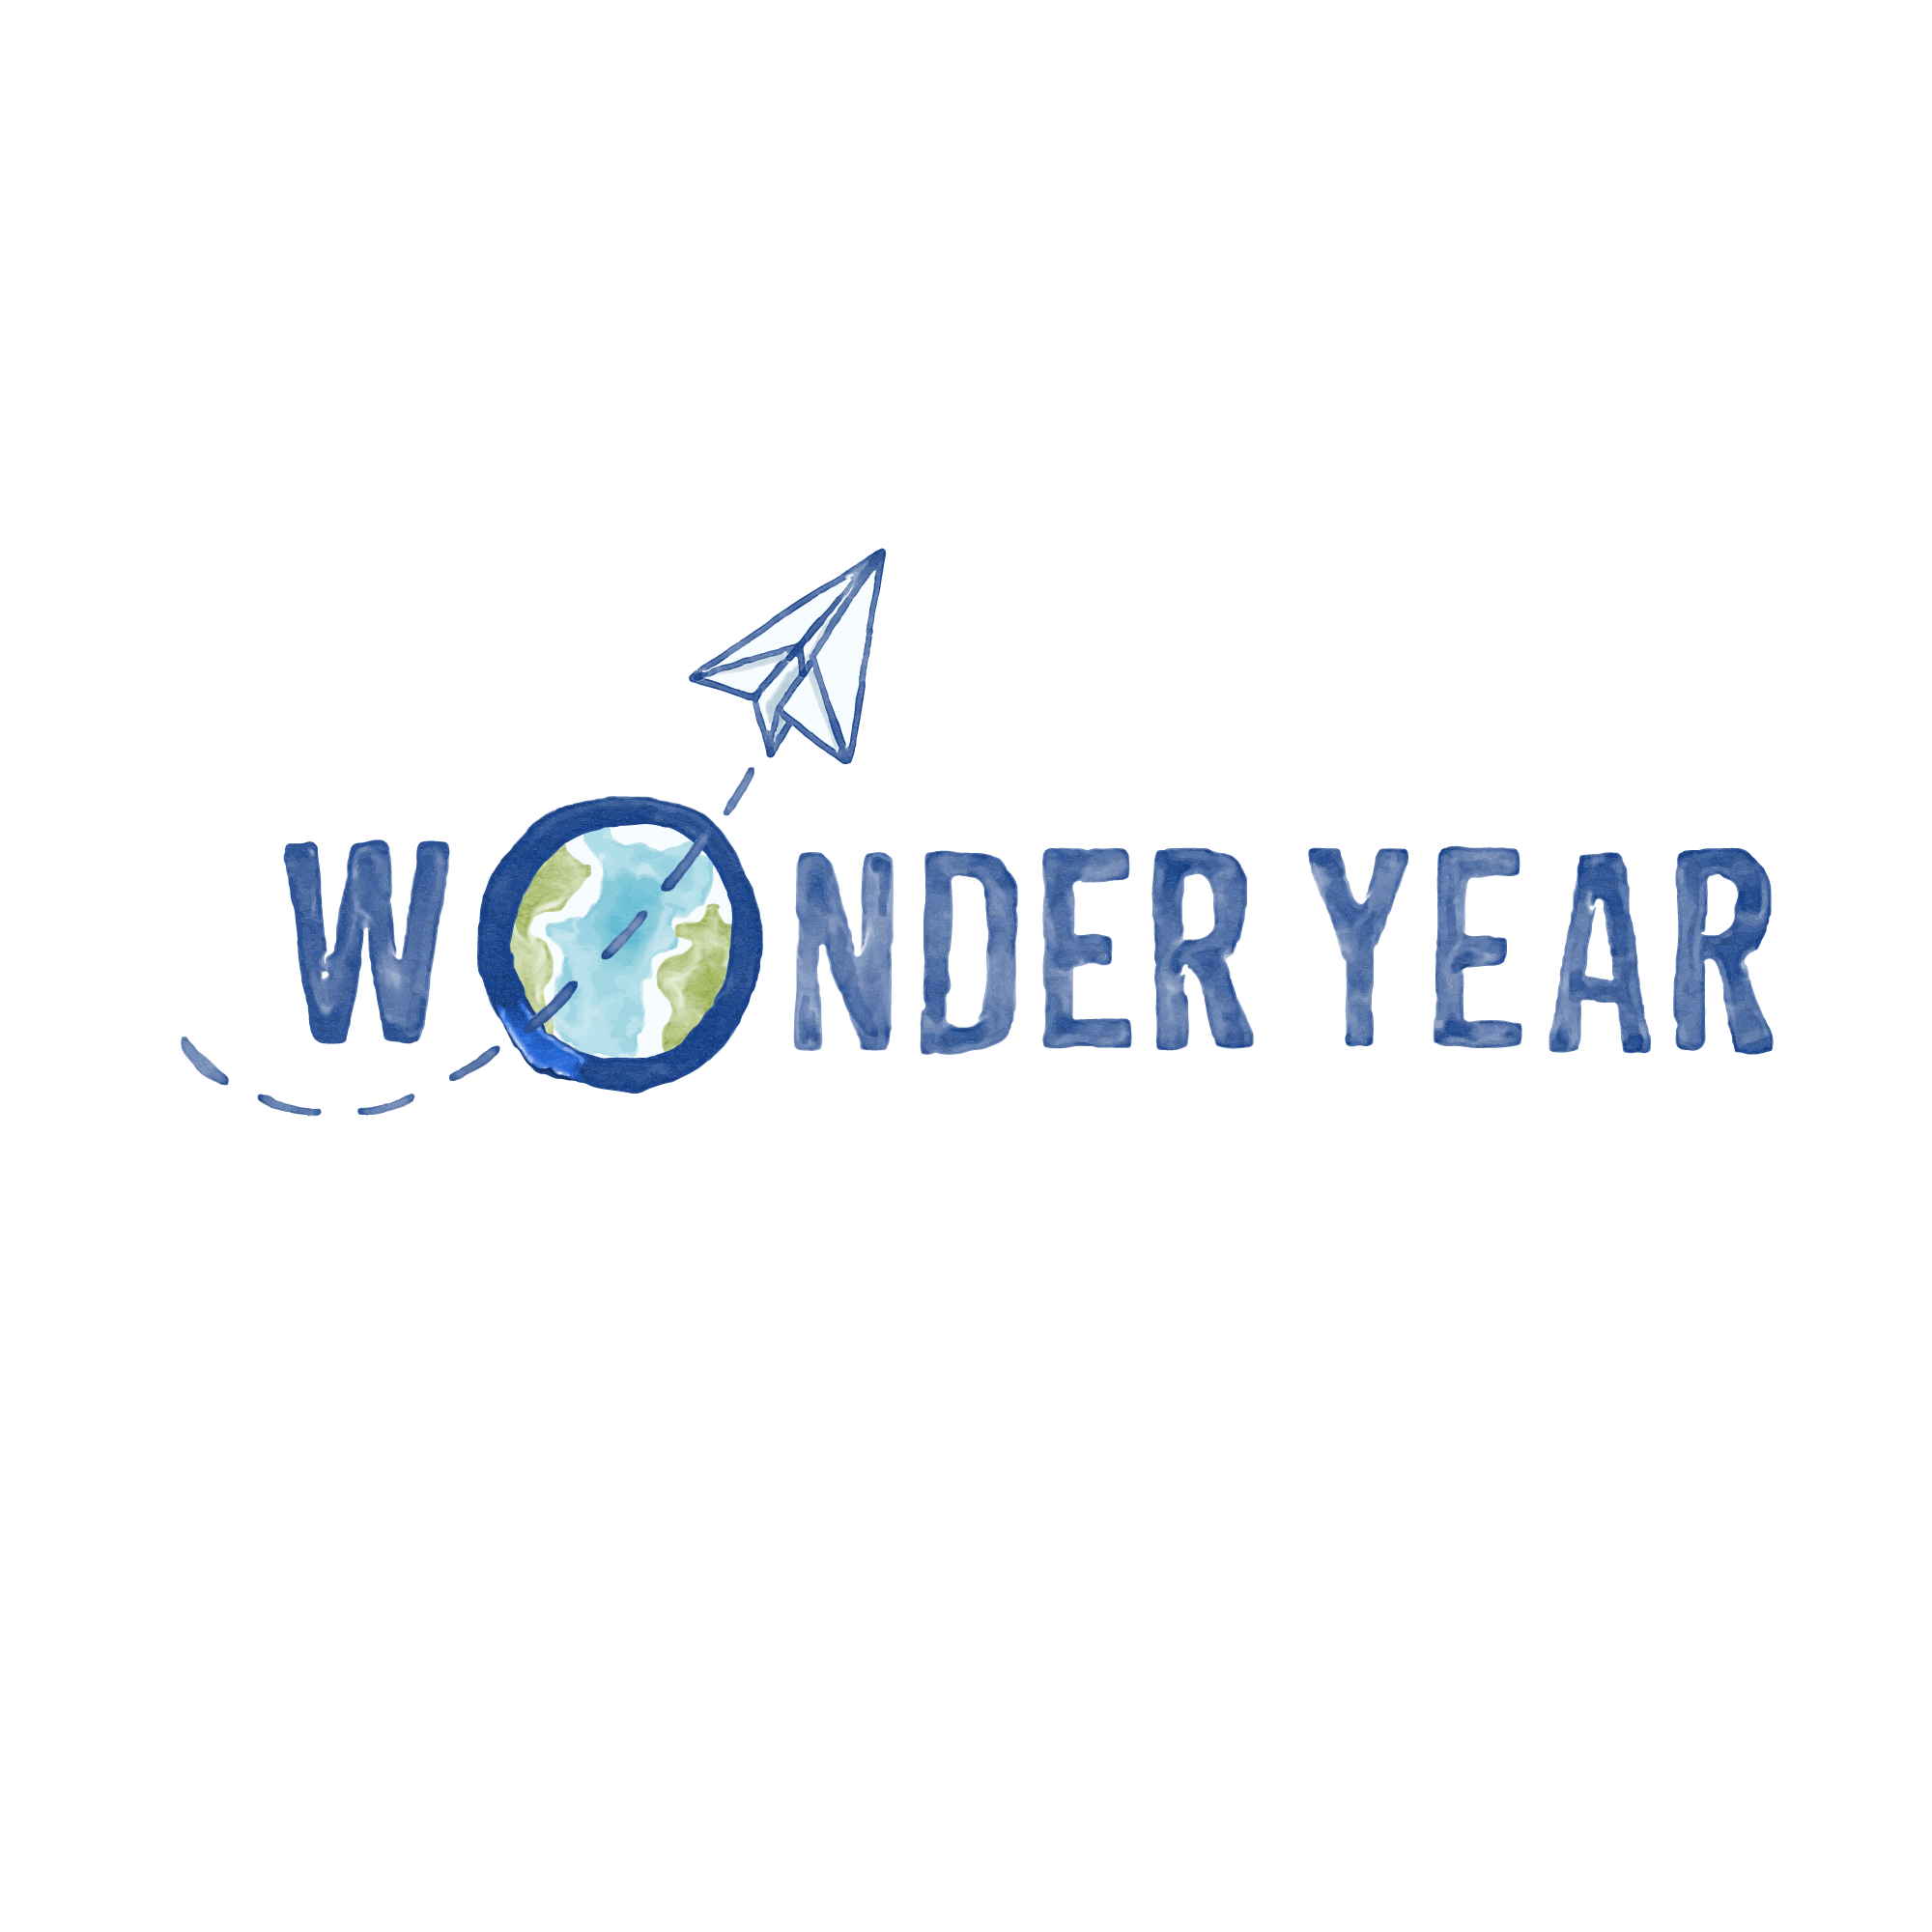 Create a logo for Wonder Year that inspires extended family travel and worldschooling